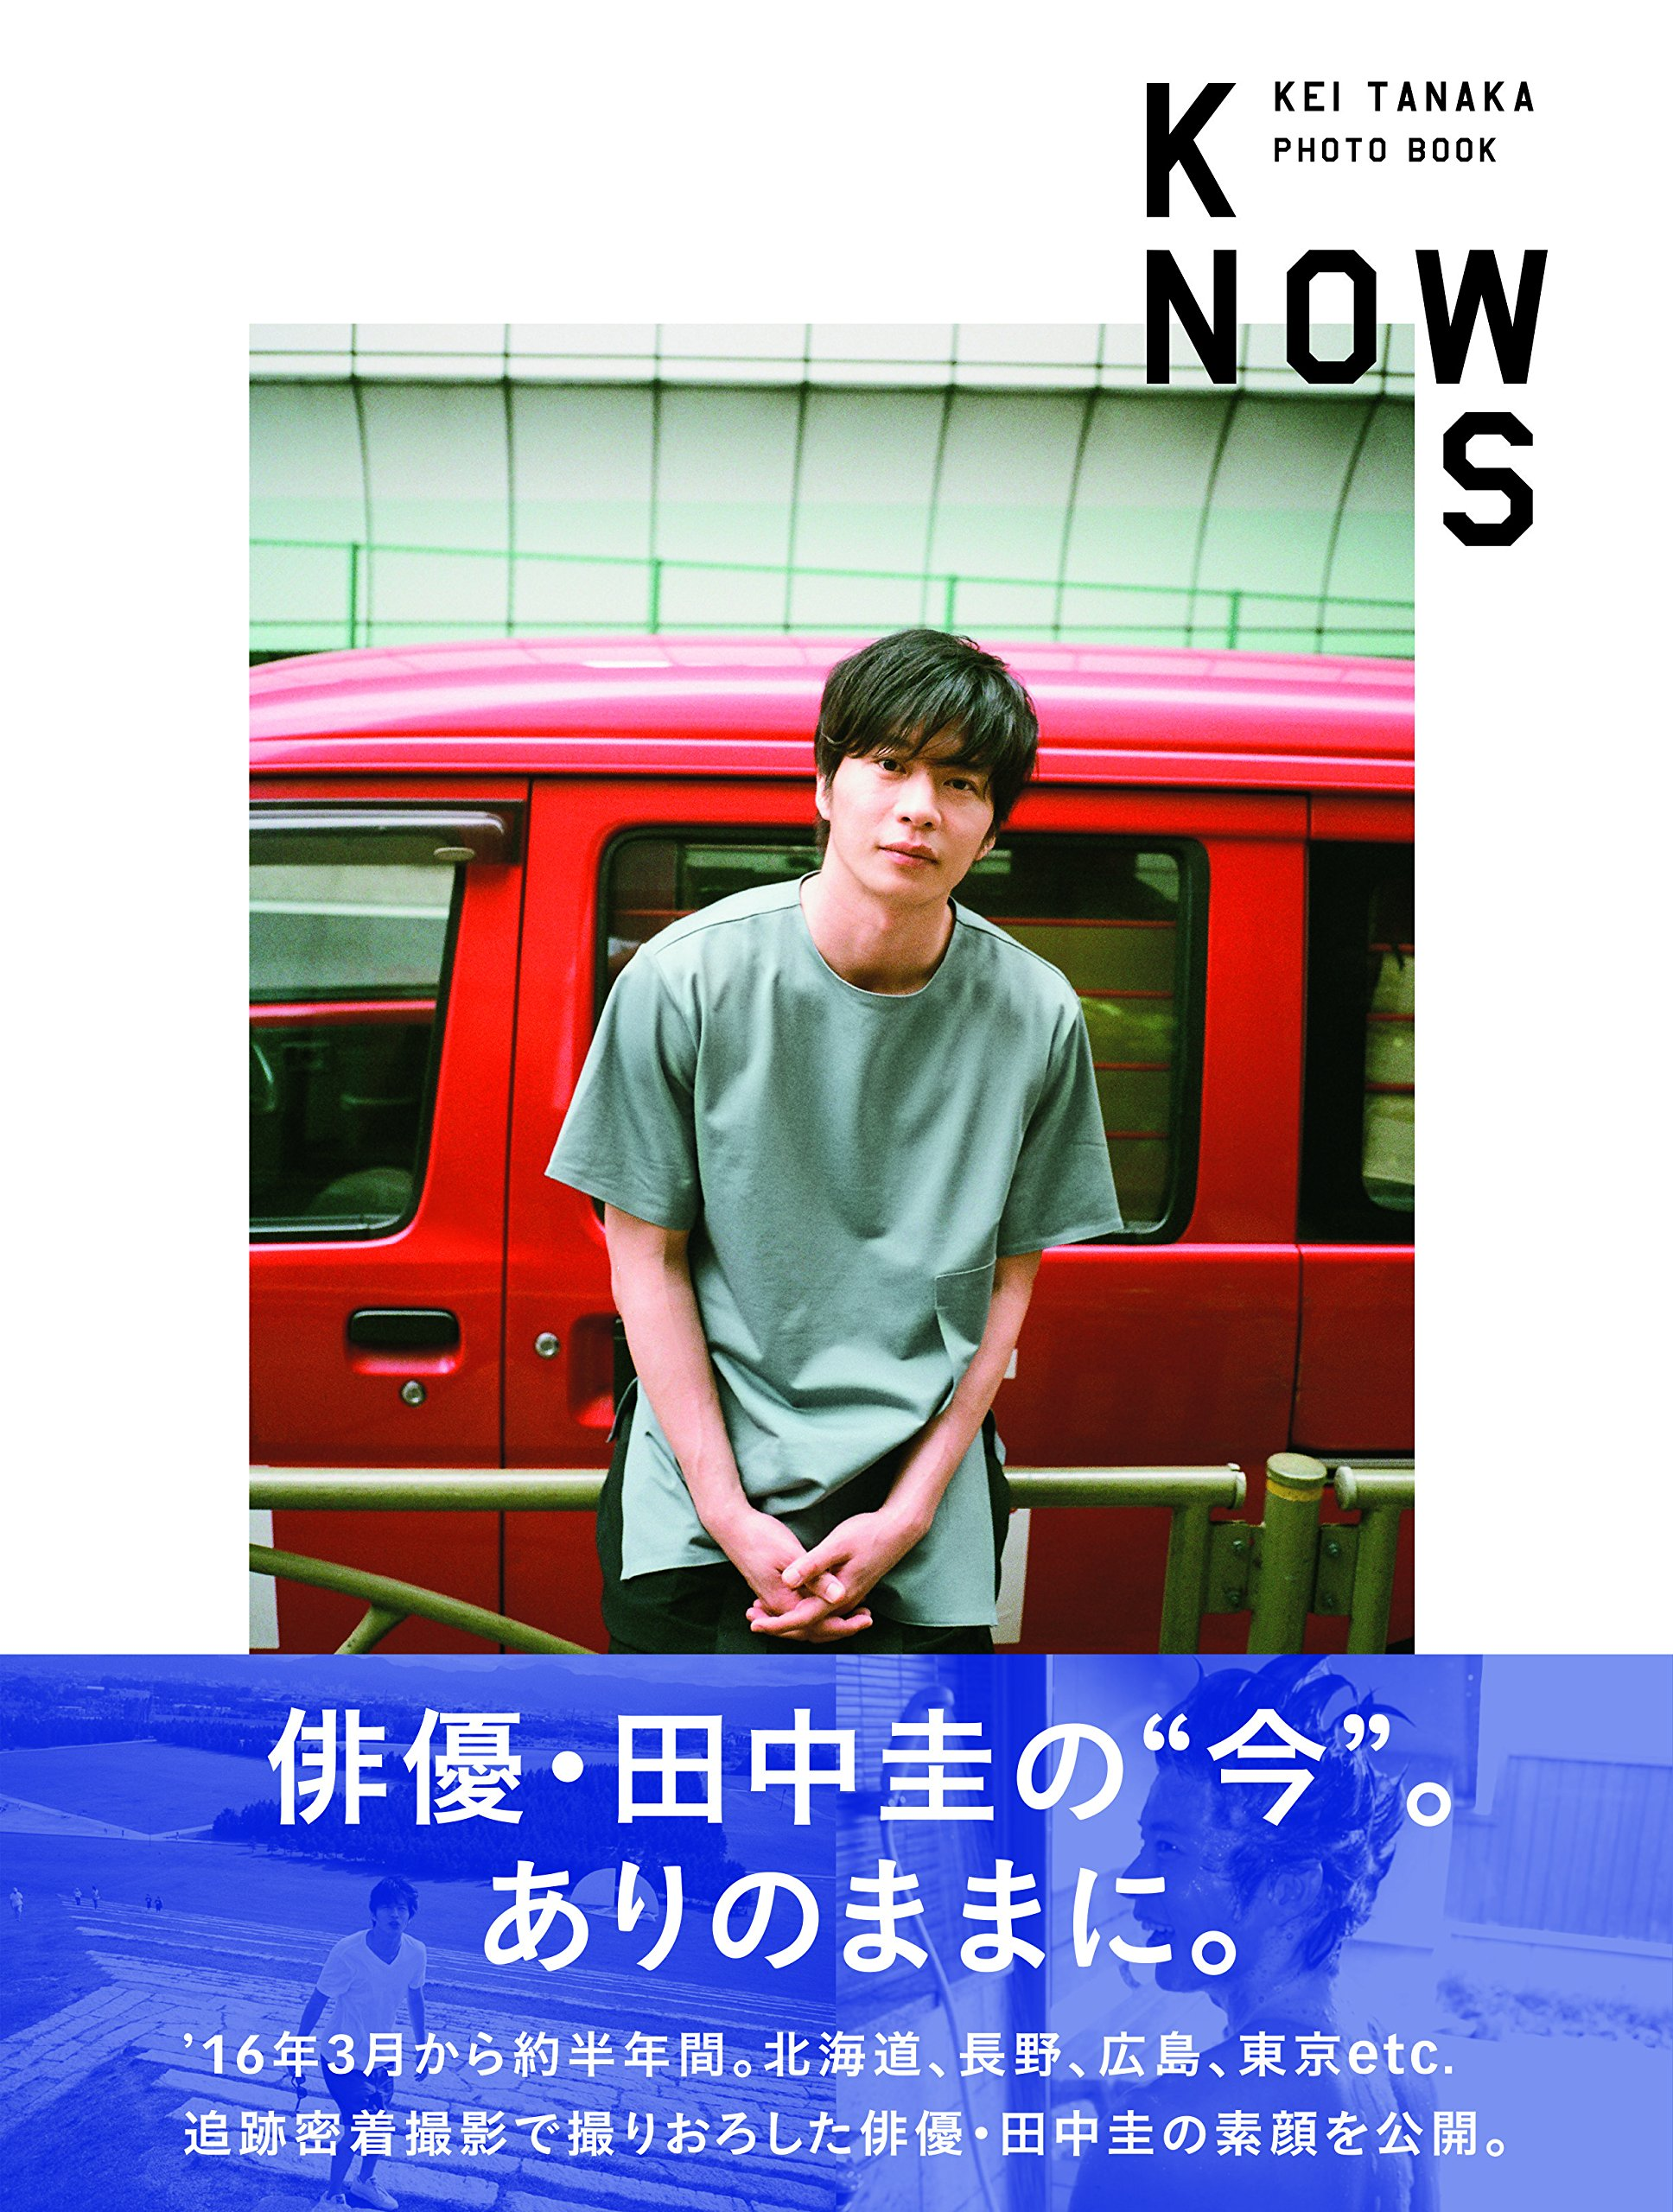 田中圭PHOTO BOOK「KNOWS」